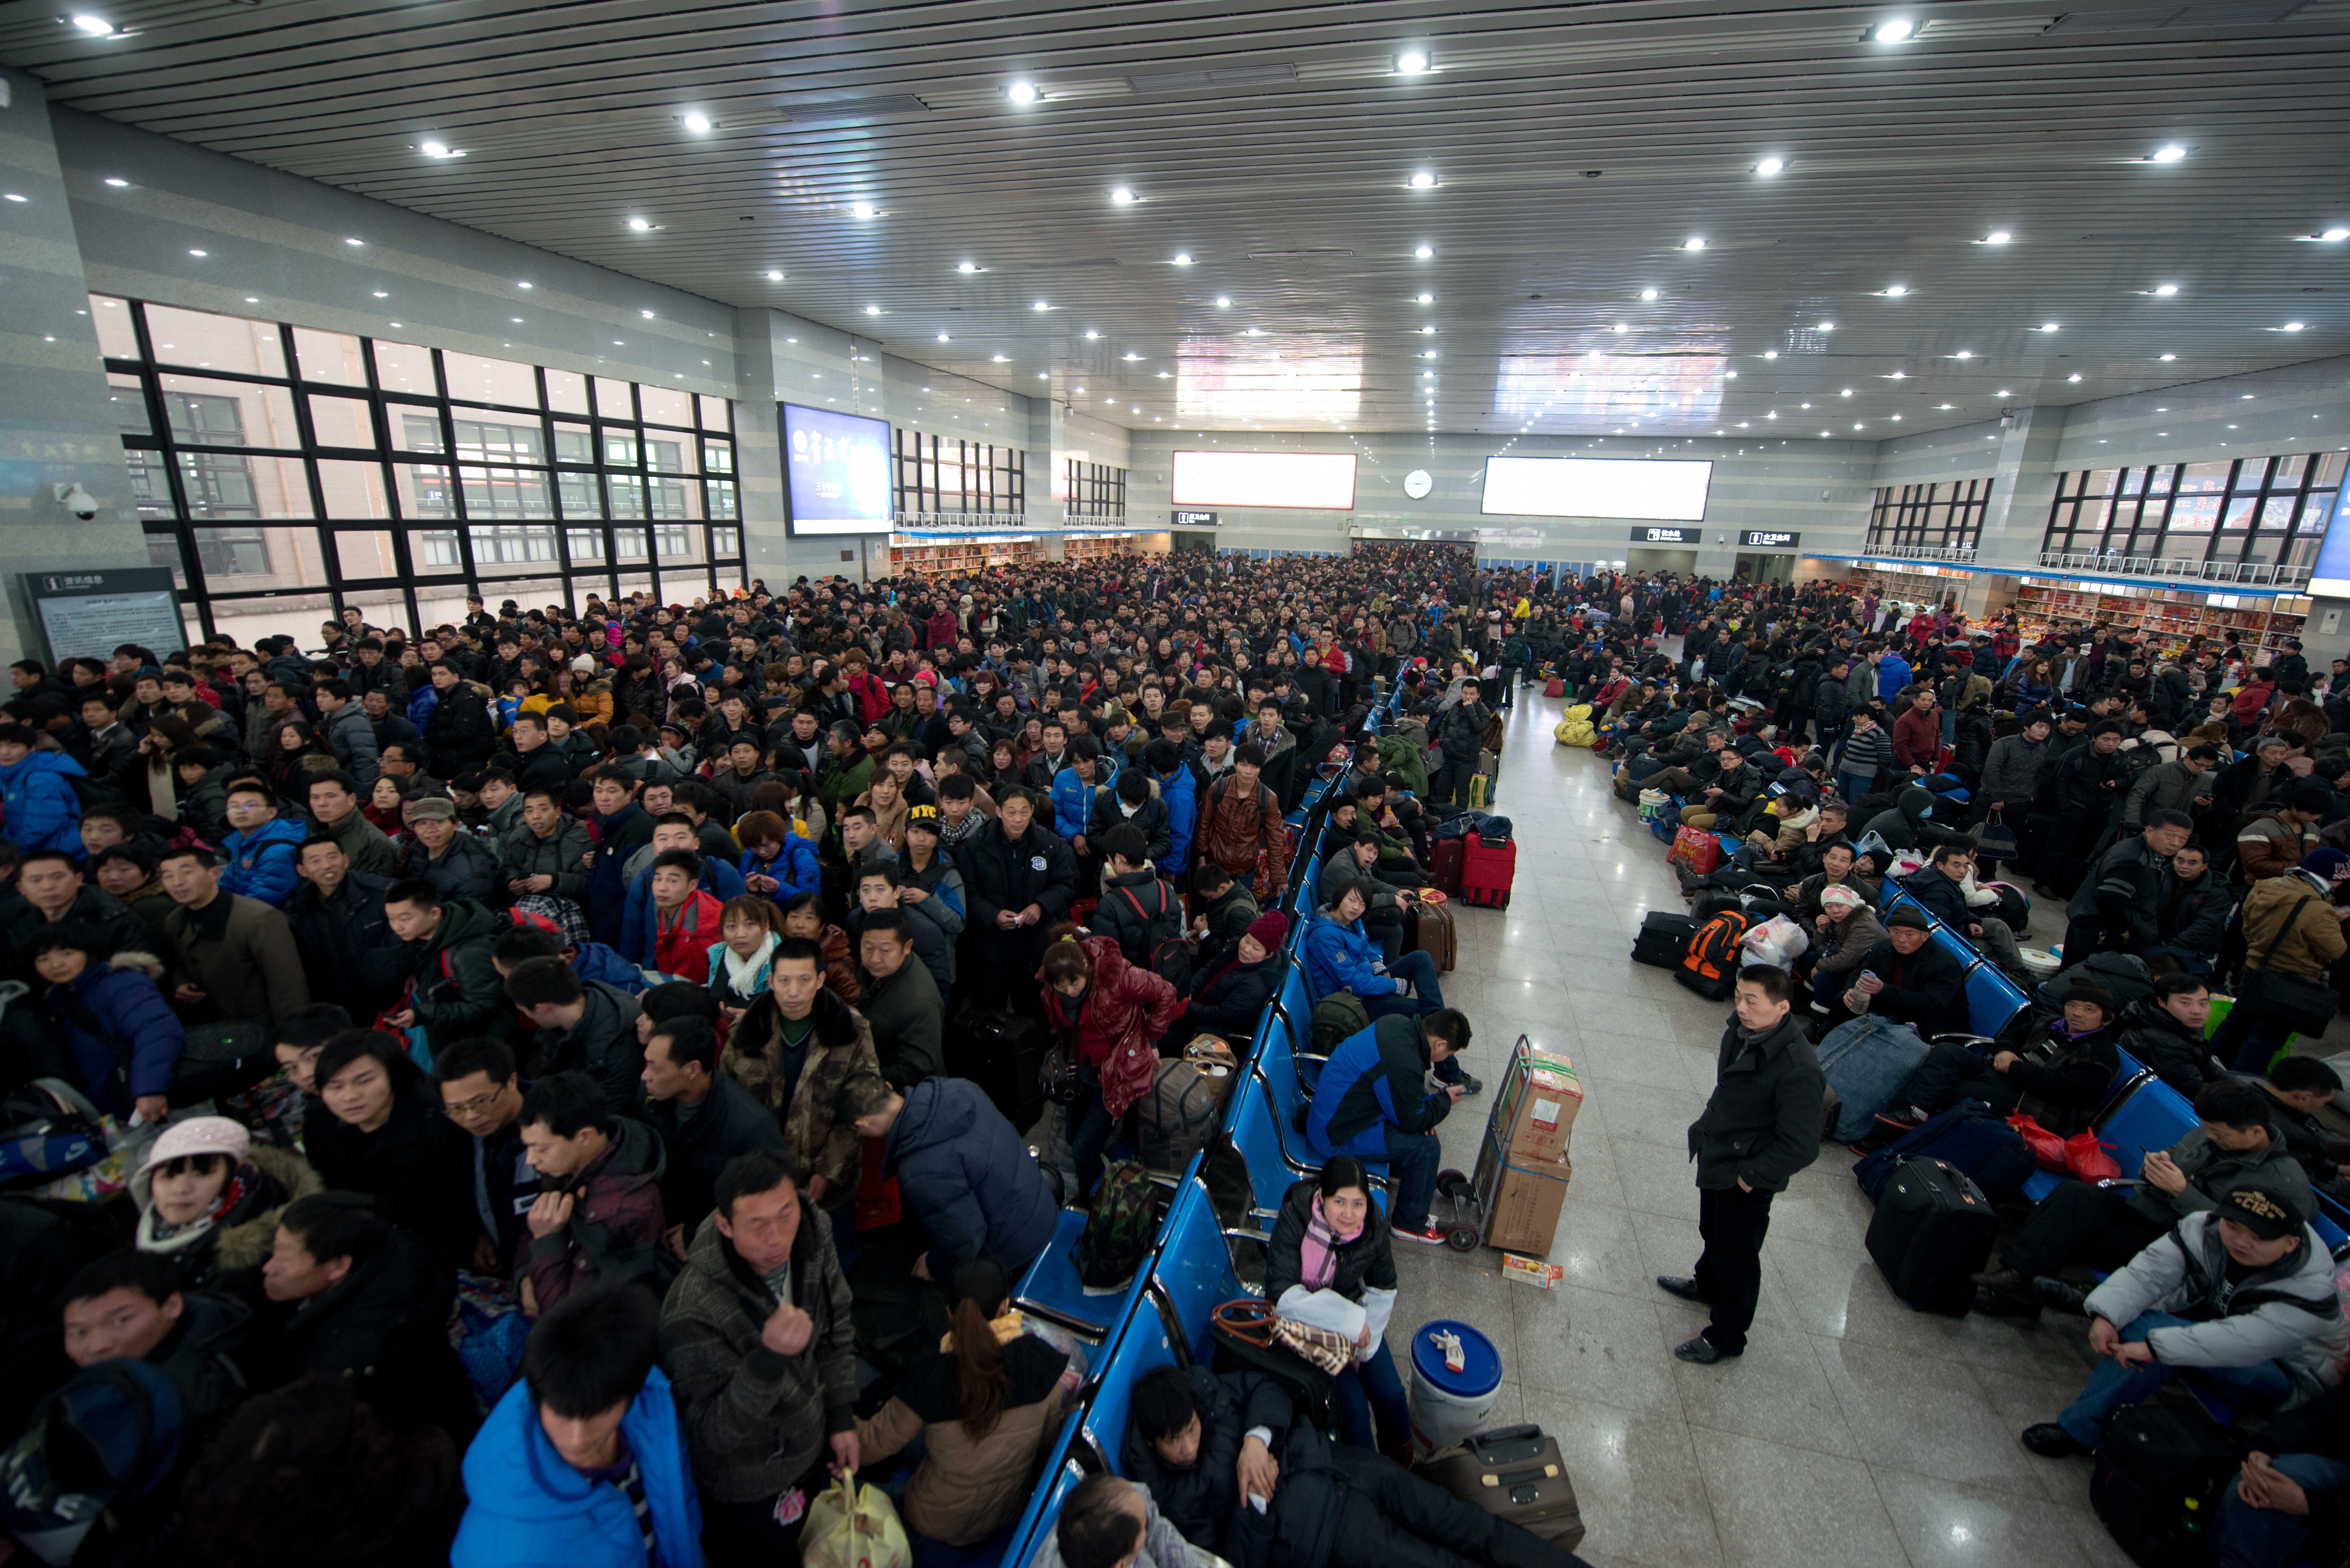 Lunar New Year travelers wait for their train at the West Railway Station in Beijing on Jan. 31, 2013. Tens of millions of people across China board trains to journey home for Lunar New Year celebrations in the world's largest annual migration.